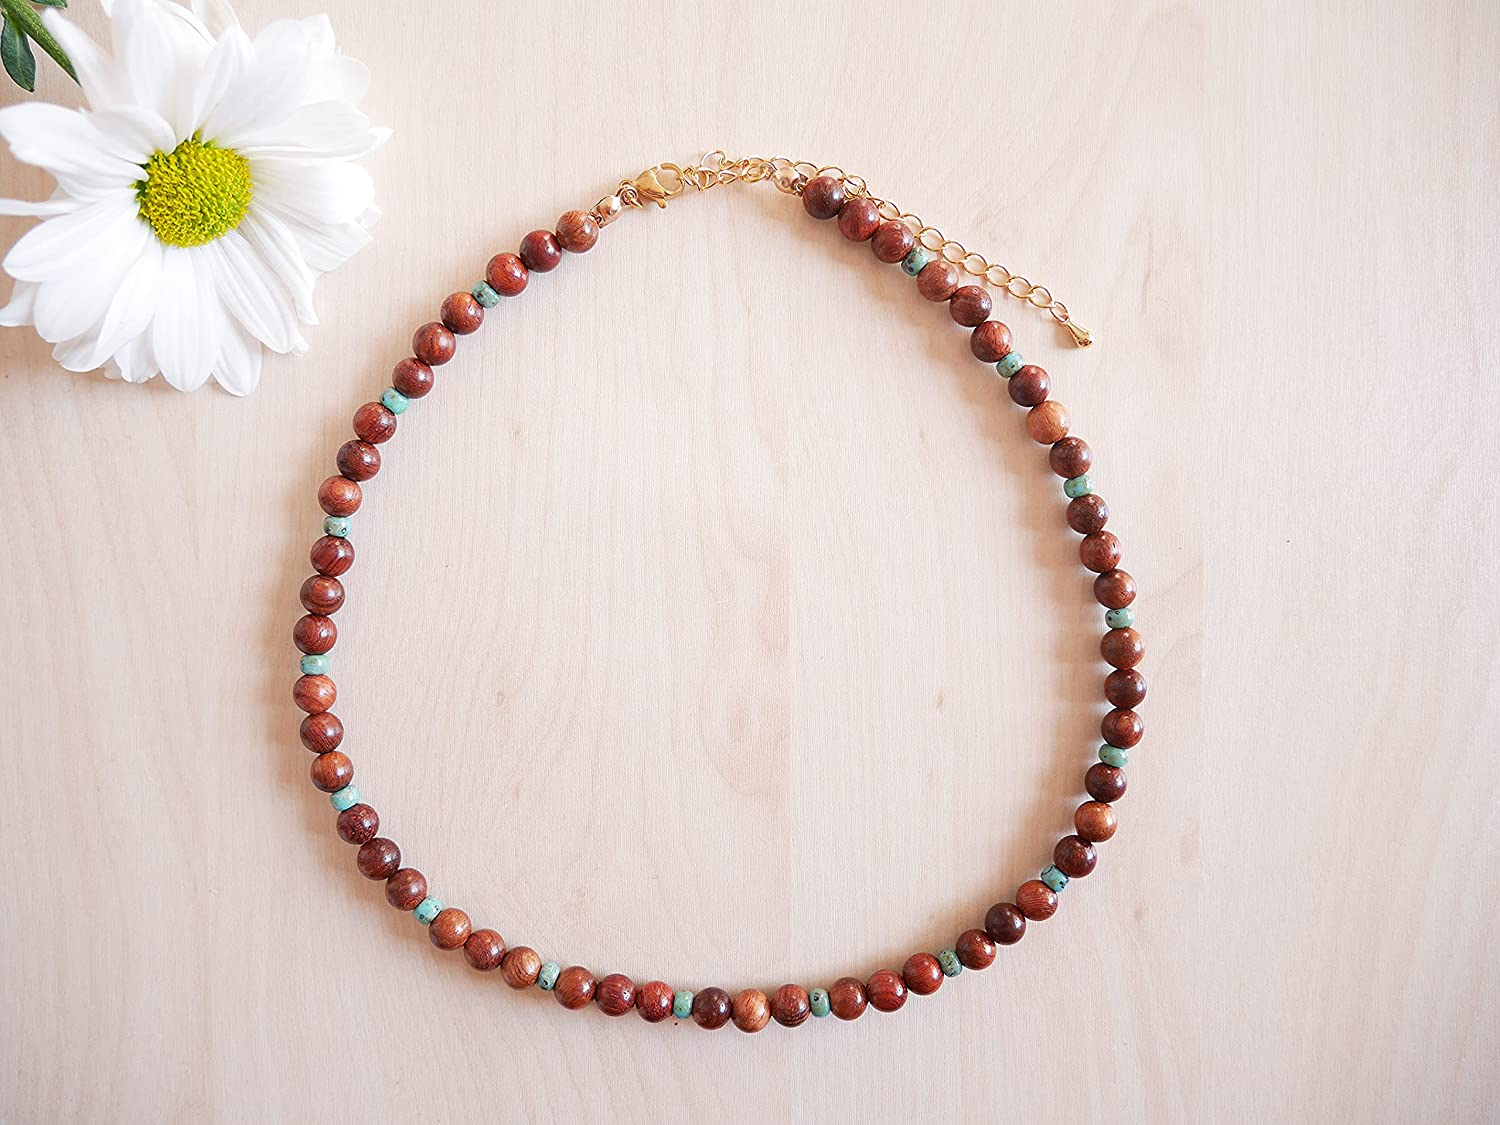 Rosewood Our shop most popular necklace - wooden natural High quality rosewood with beaded